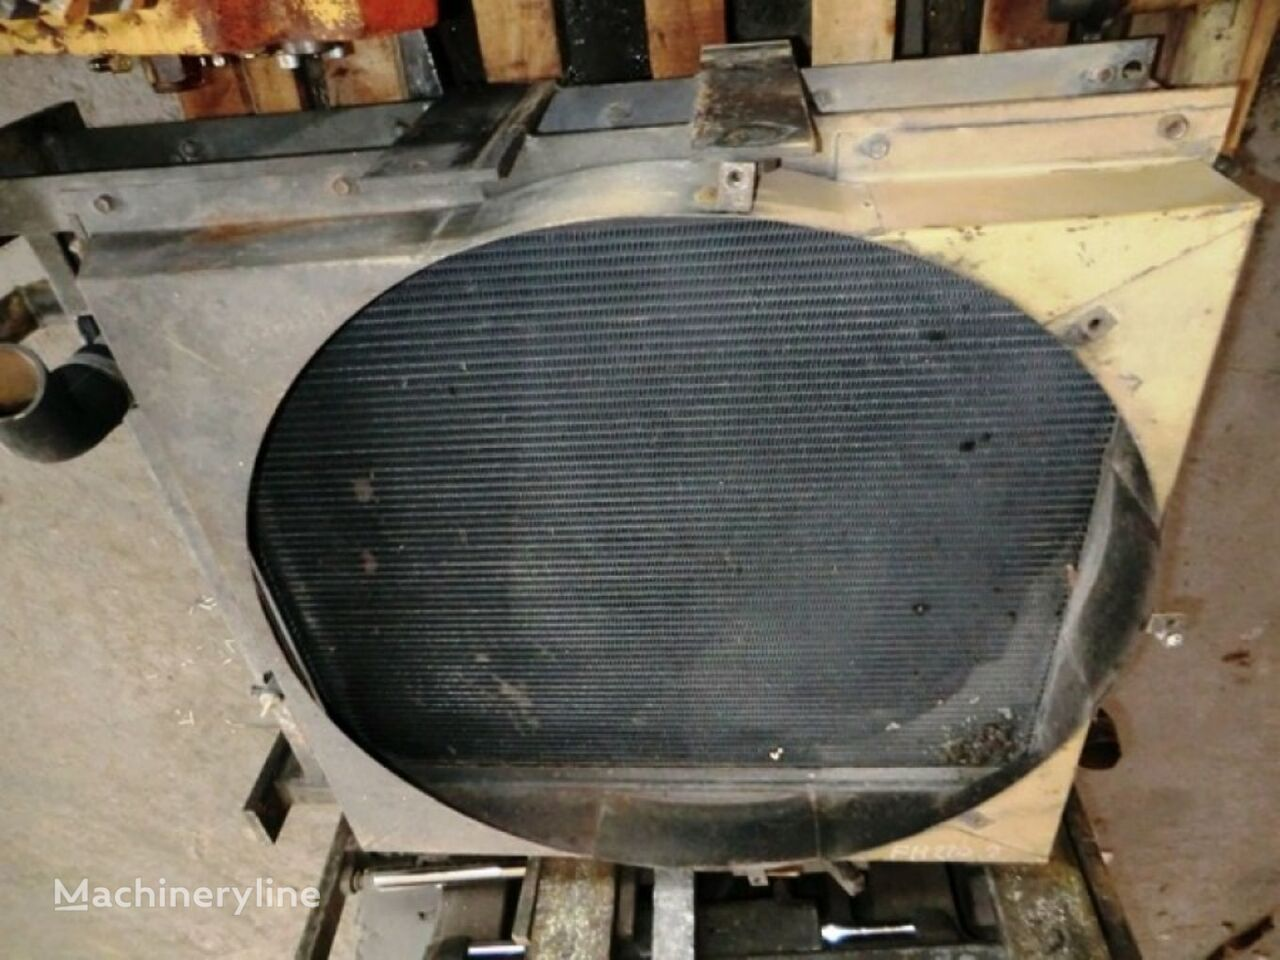 RADIATOR AS AND OIL COOLER engine cooling radiator for FIAT-HITACHI  FH220.2 22T0366K excavator